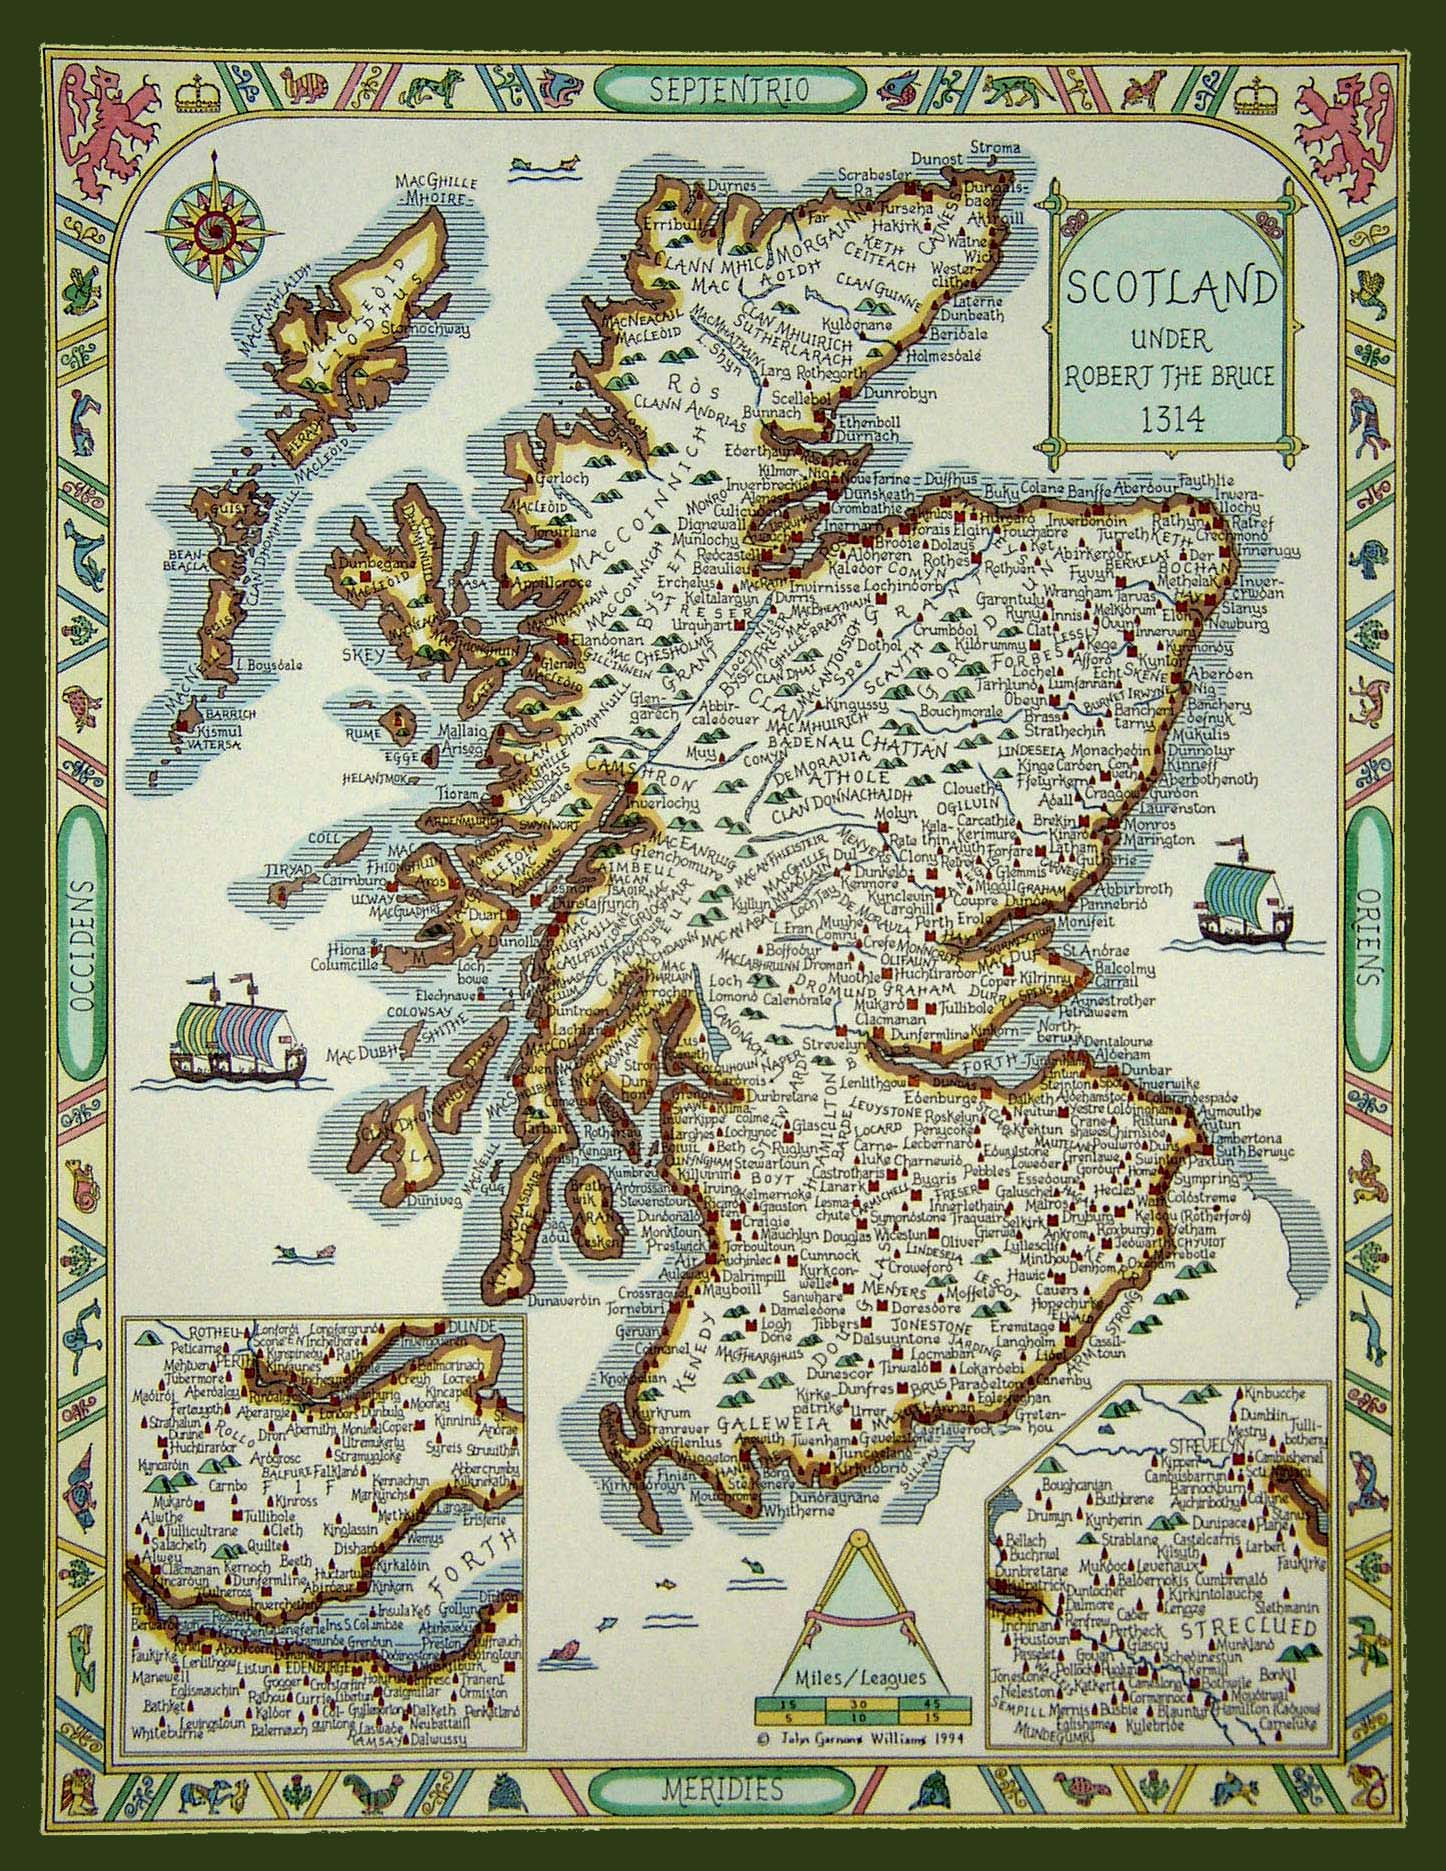 clan_map_1314_under_robert_the_bruce